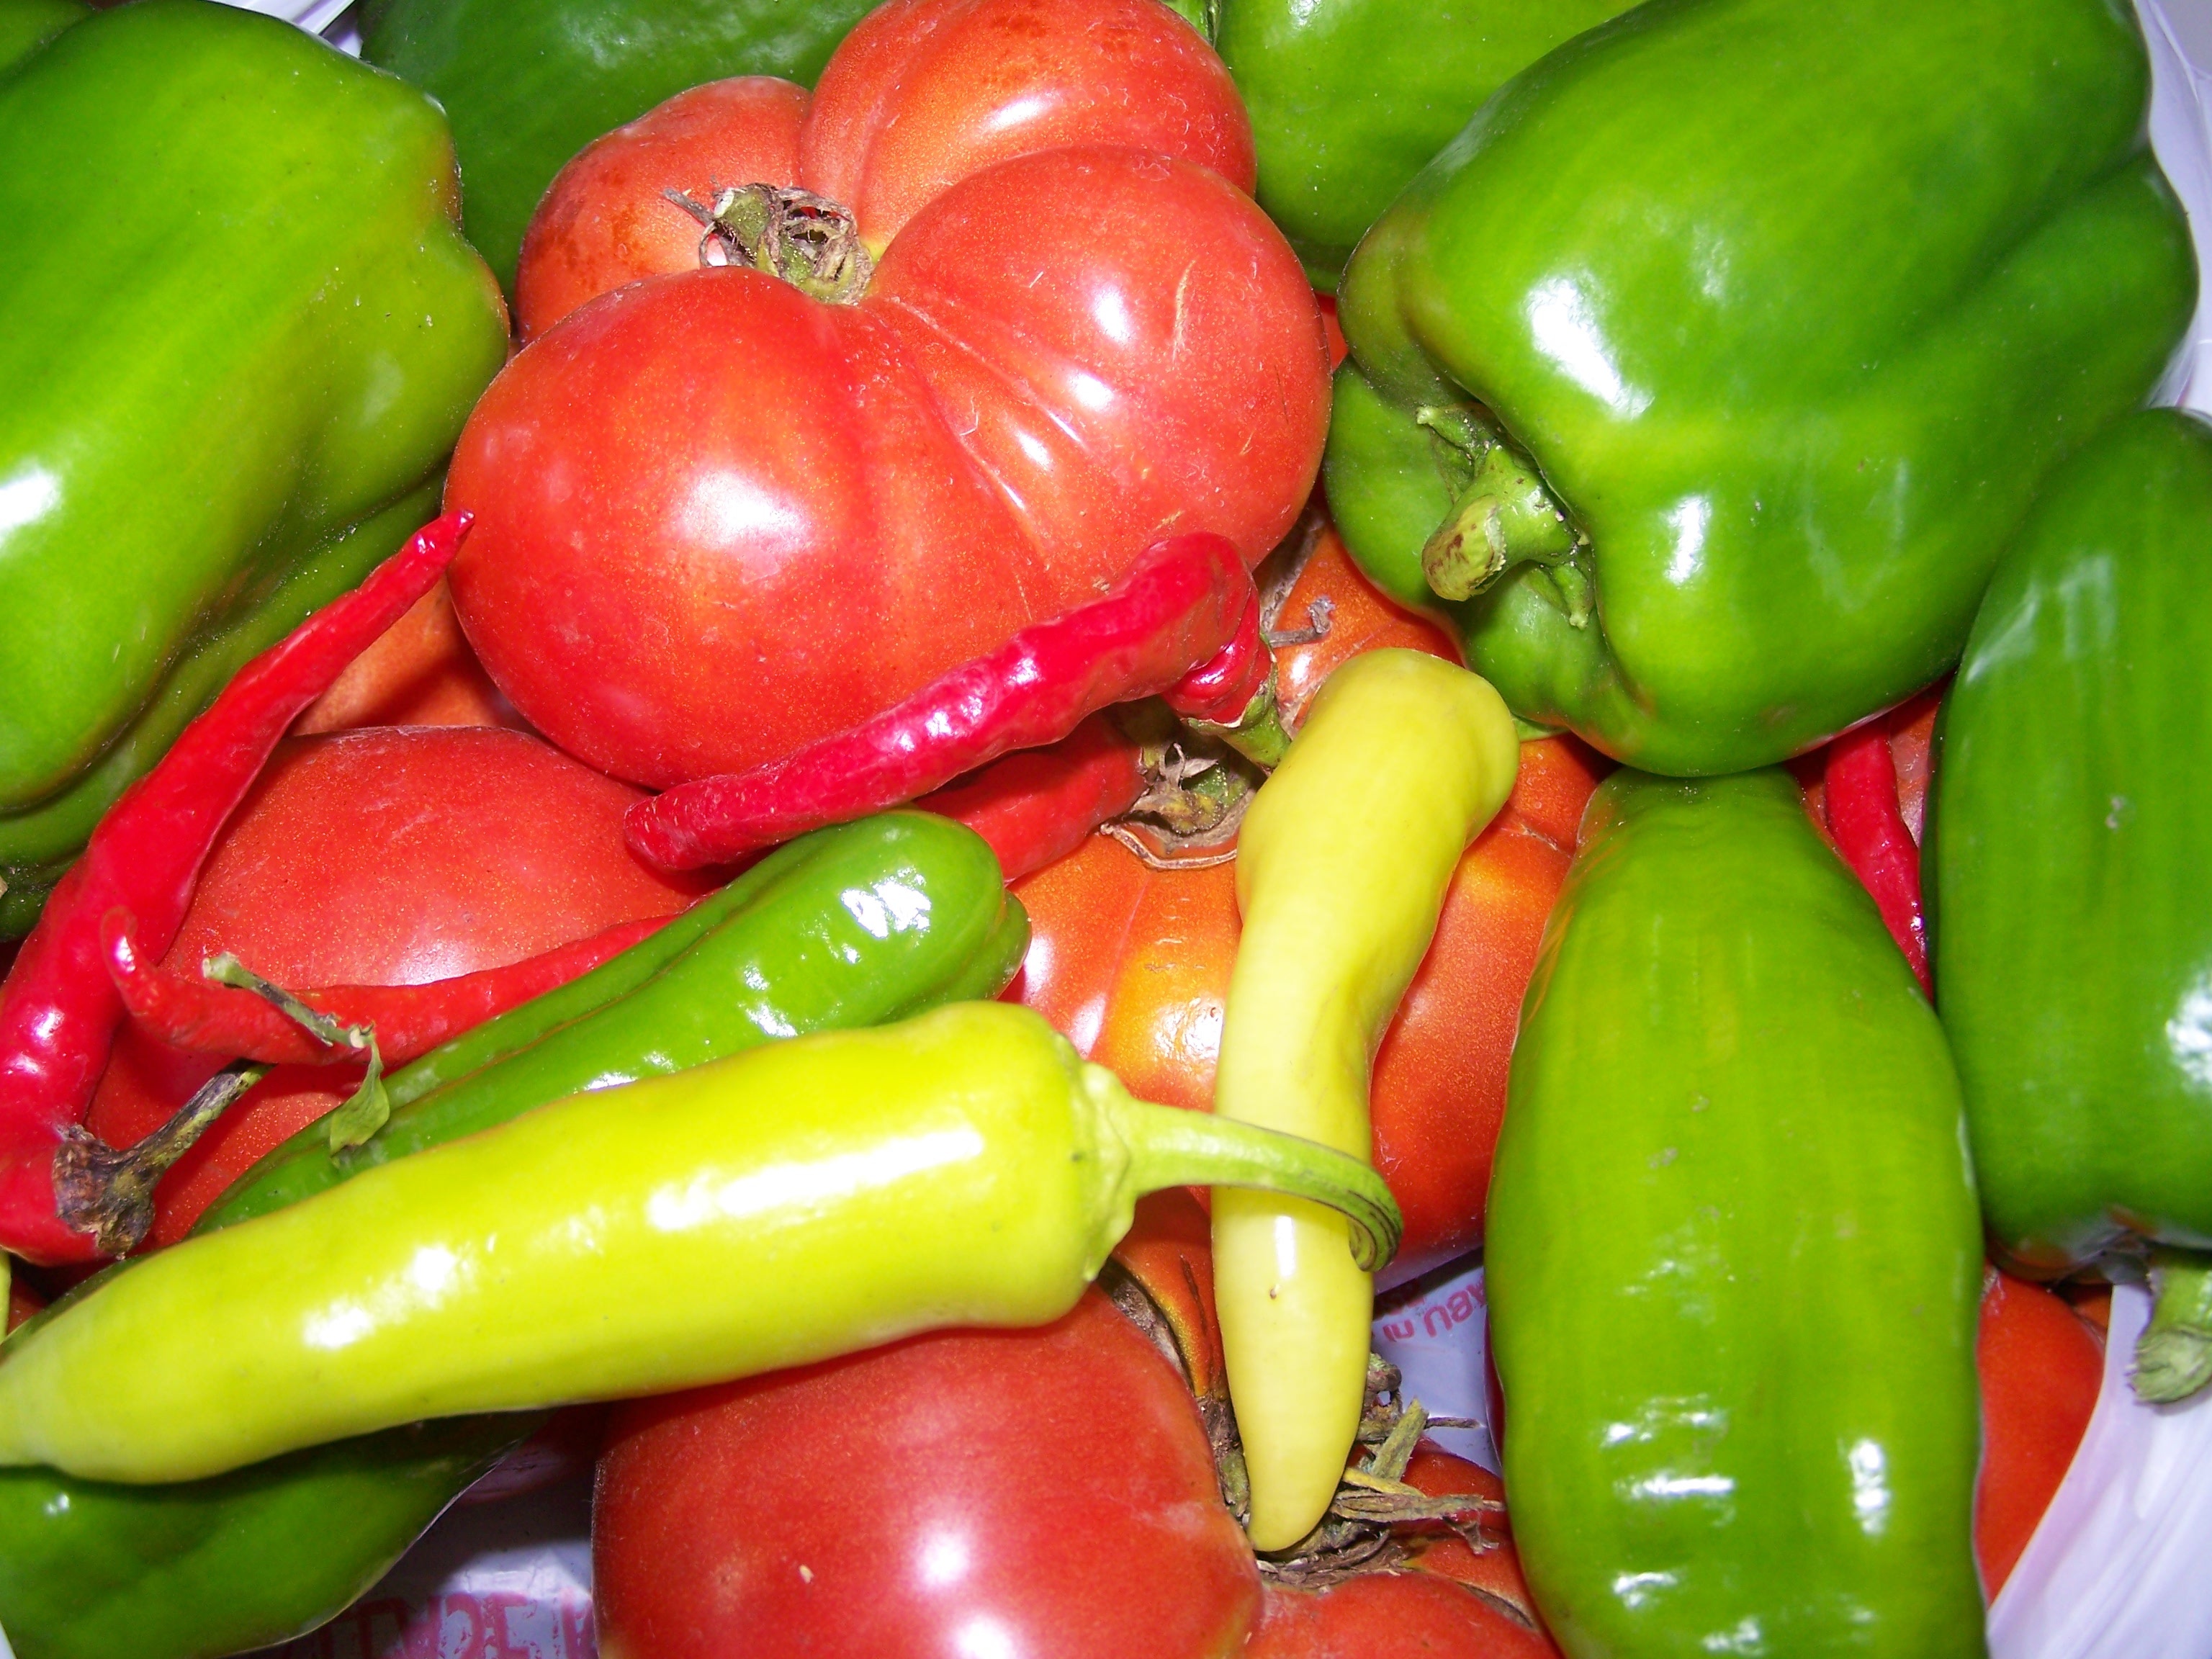 Fruits and Veggies – More Matters Month